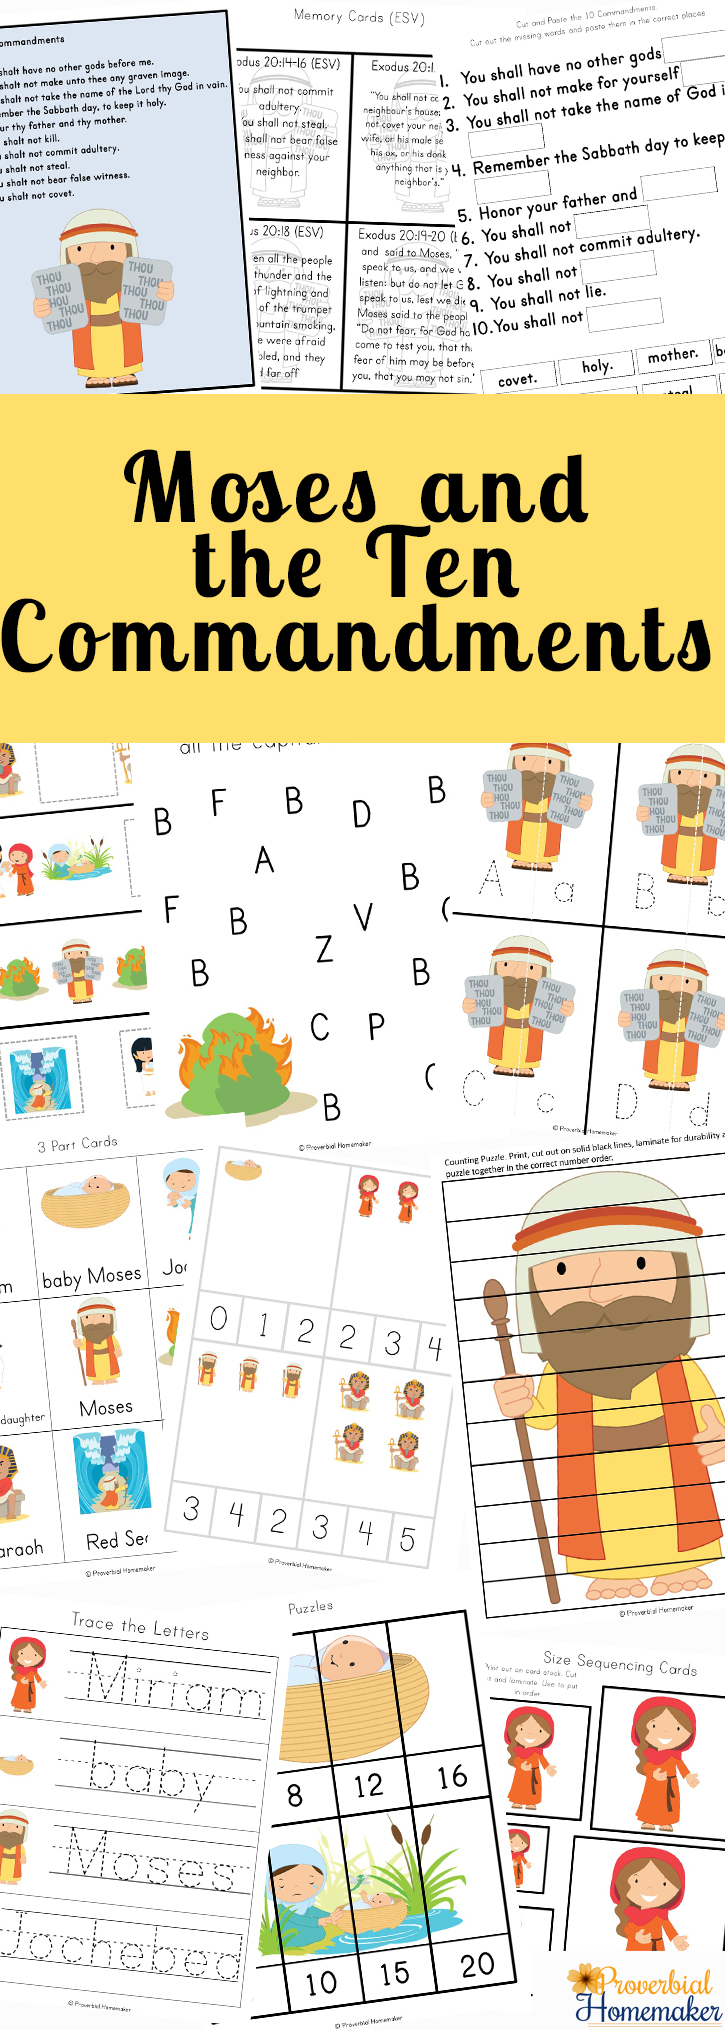 image regarding Ten Commandments Printable Activities titled Moses and the 10 Commandments Printable Pack - Proverbial